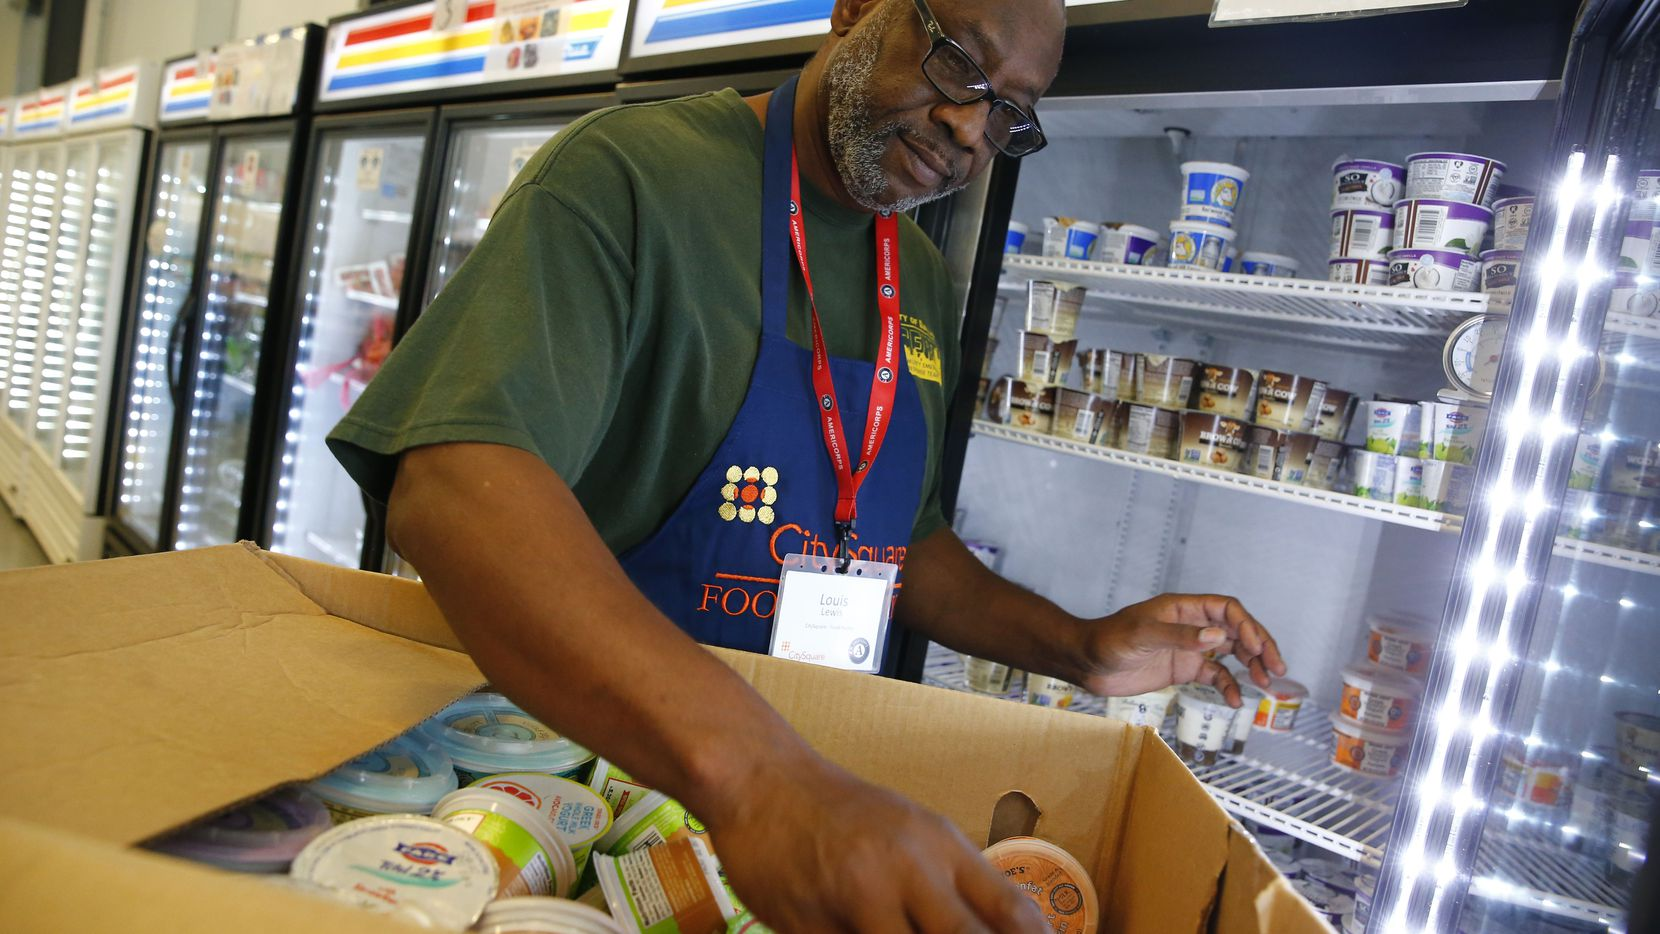 Volunteer Louis Lewis organized yogurt at the CitySquare Opportunity Center food pantry in Dallas in November 2017. The center needs both onsite and virtual volunteers.